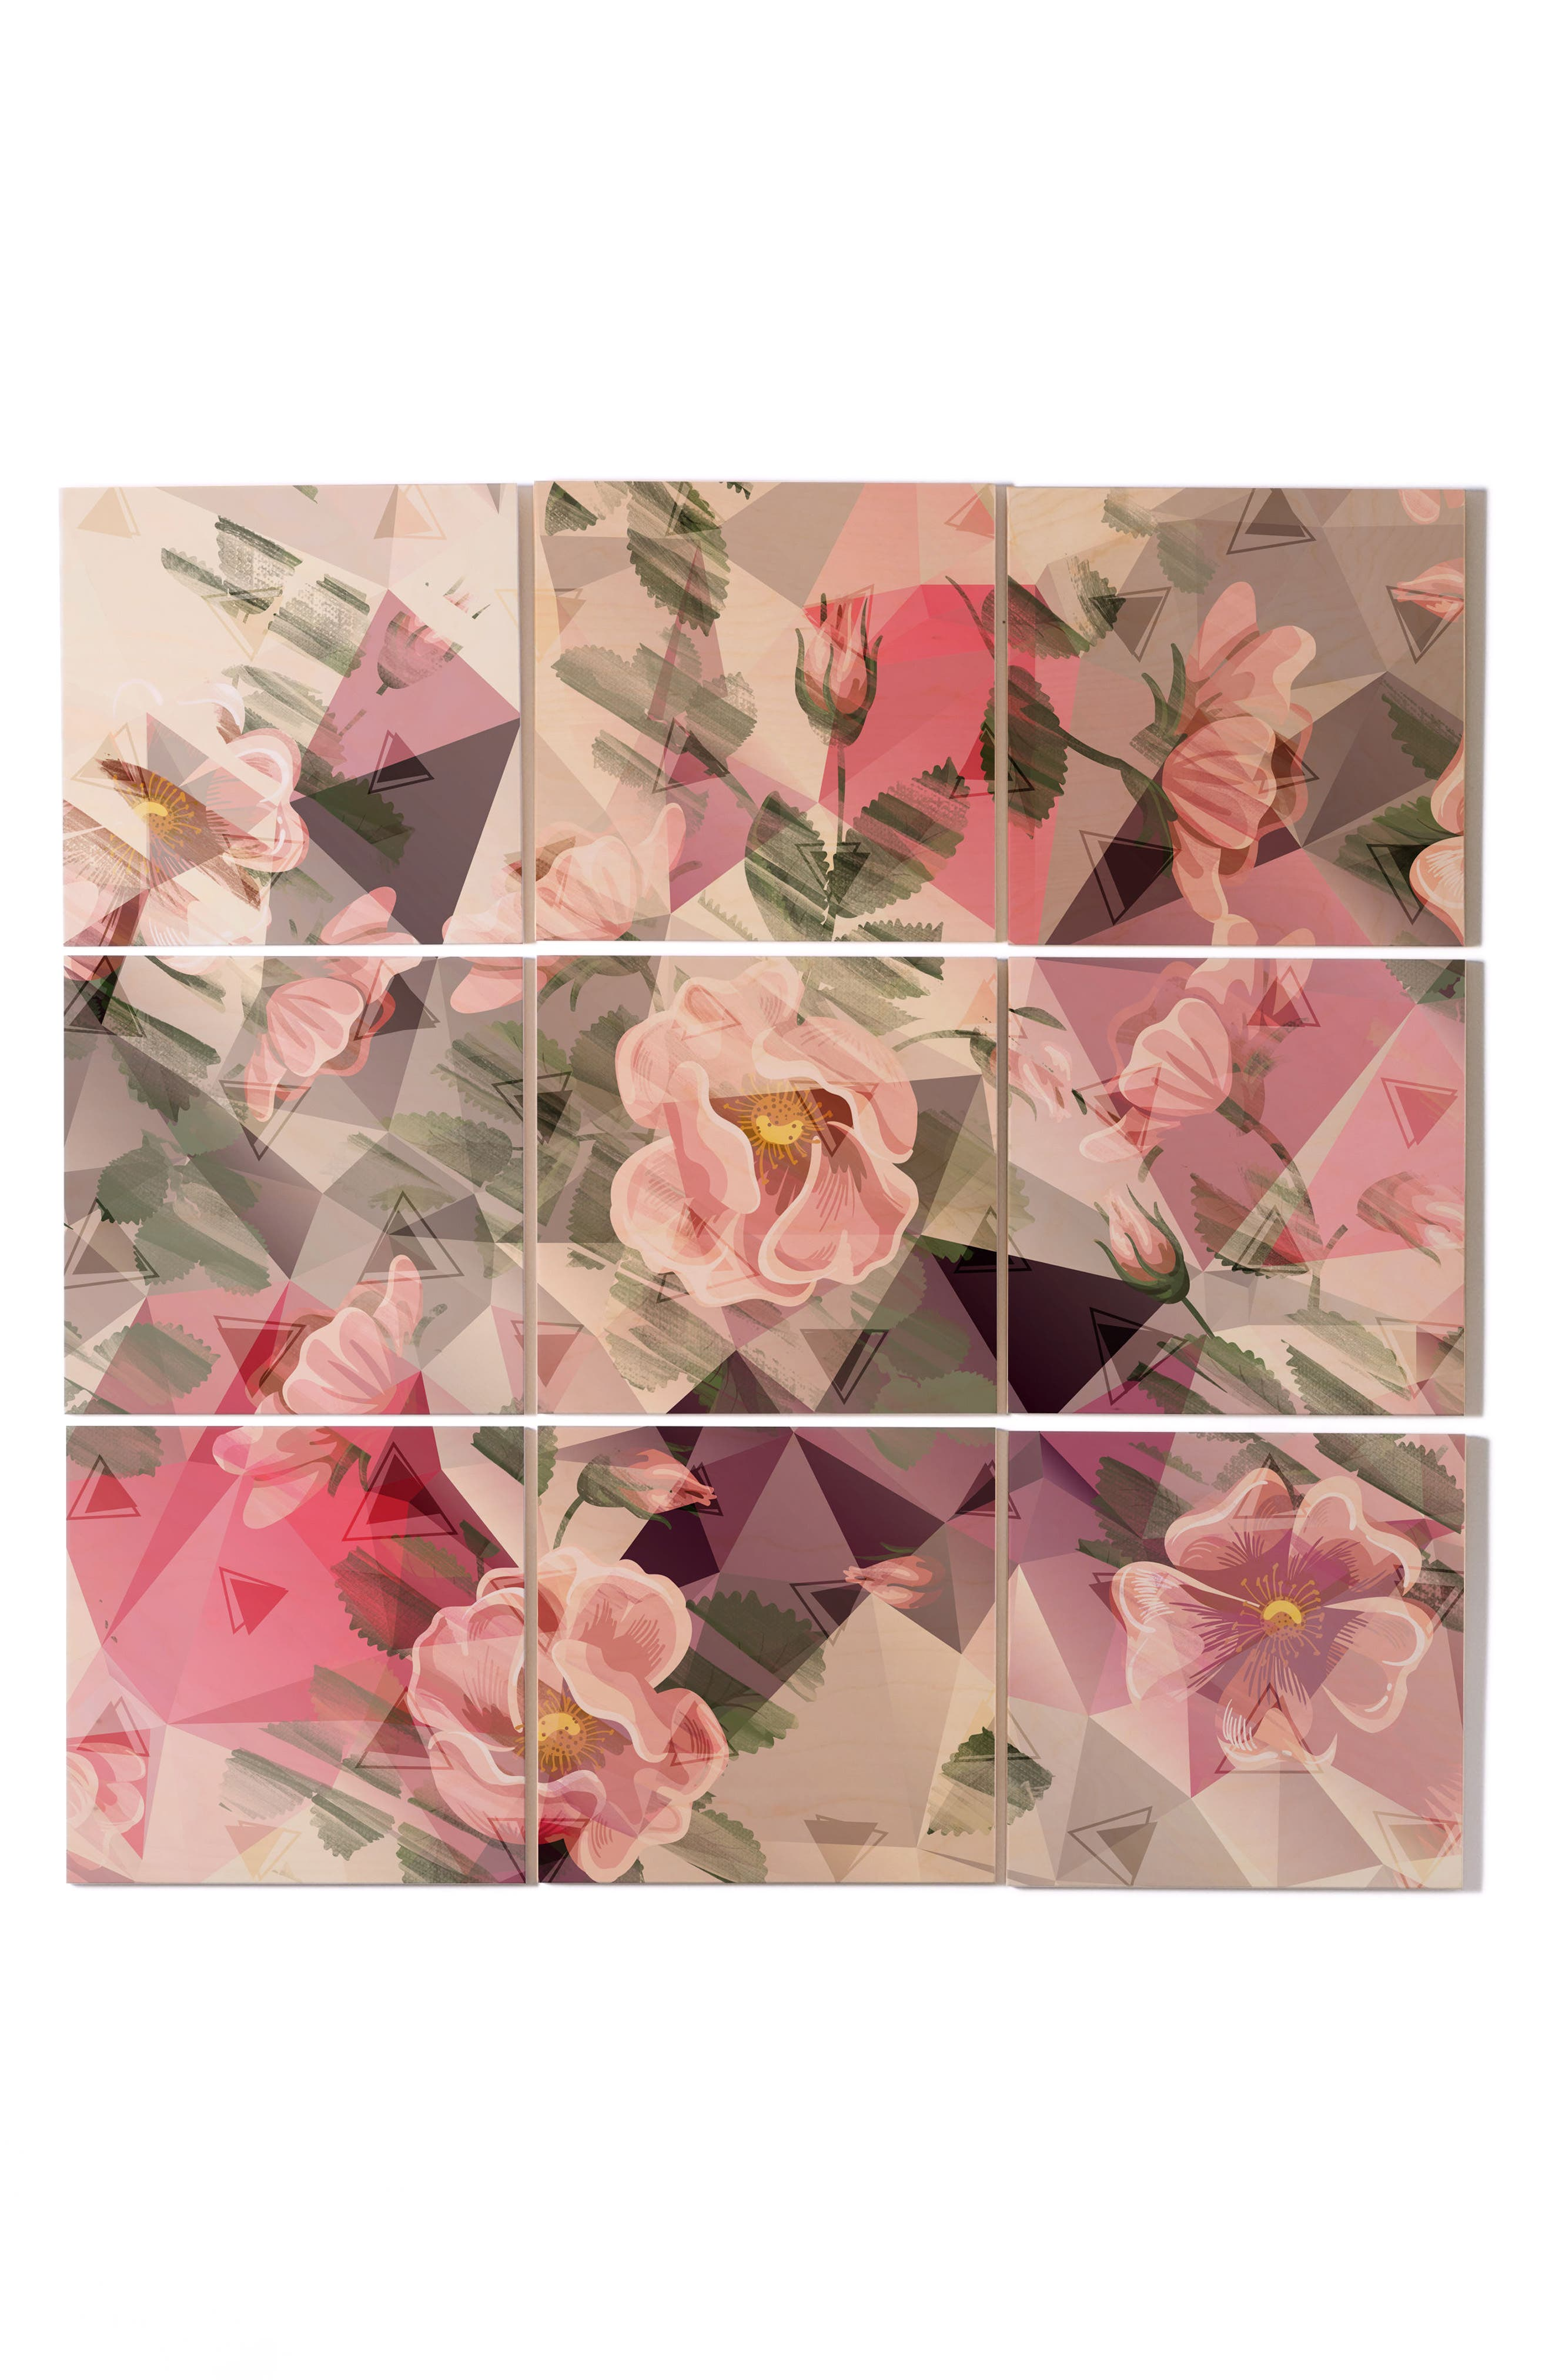 DENY DESIGNS Floral 9-Piece Wood Wall Mural, Main, color, PINK